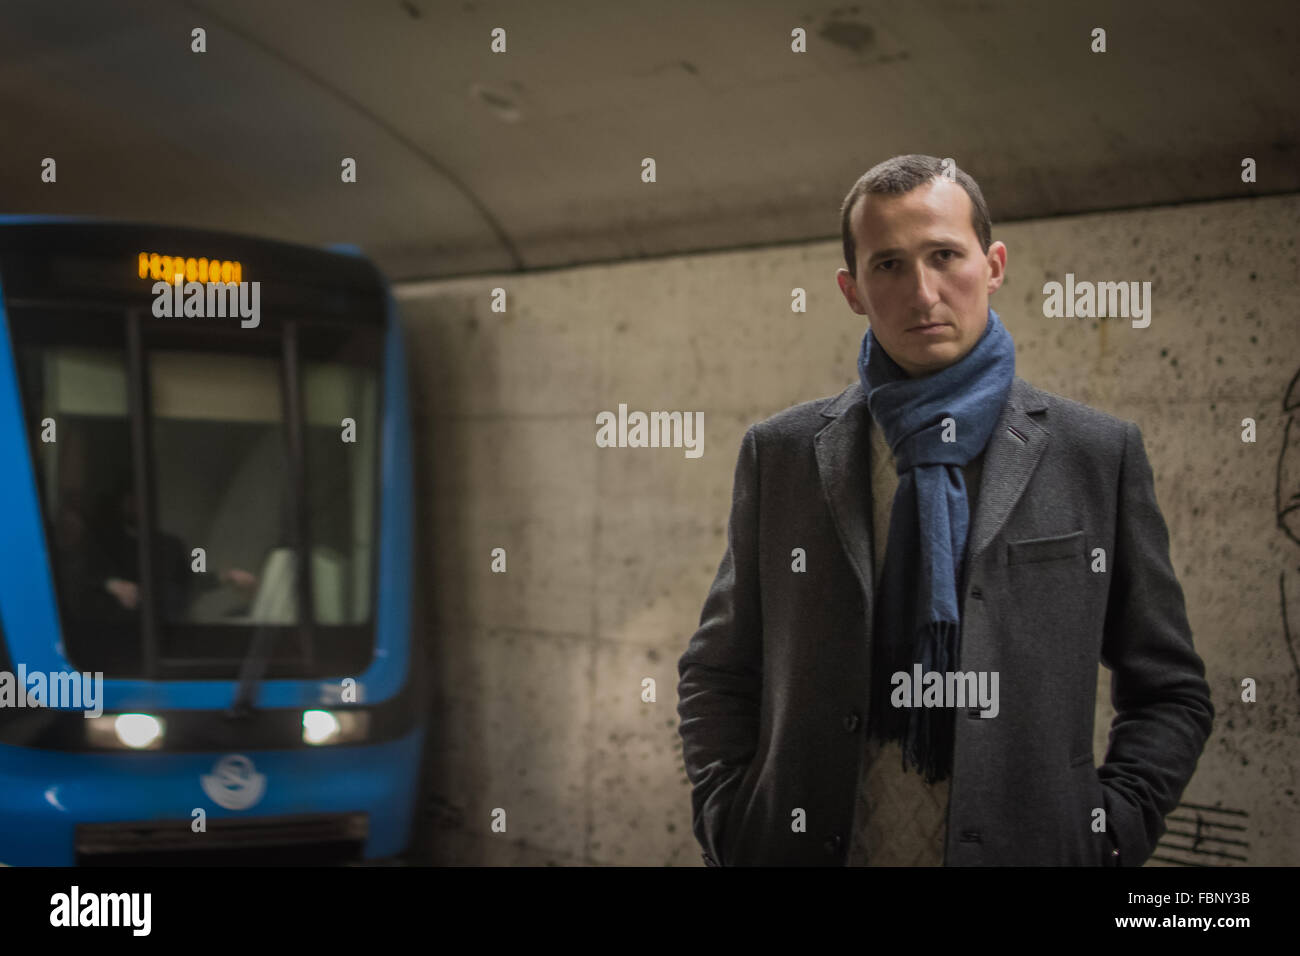 Portrait Of Man Standing On Railroad Platform - Stock Image